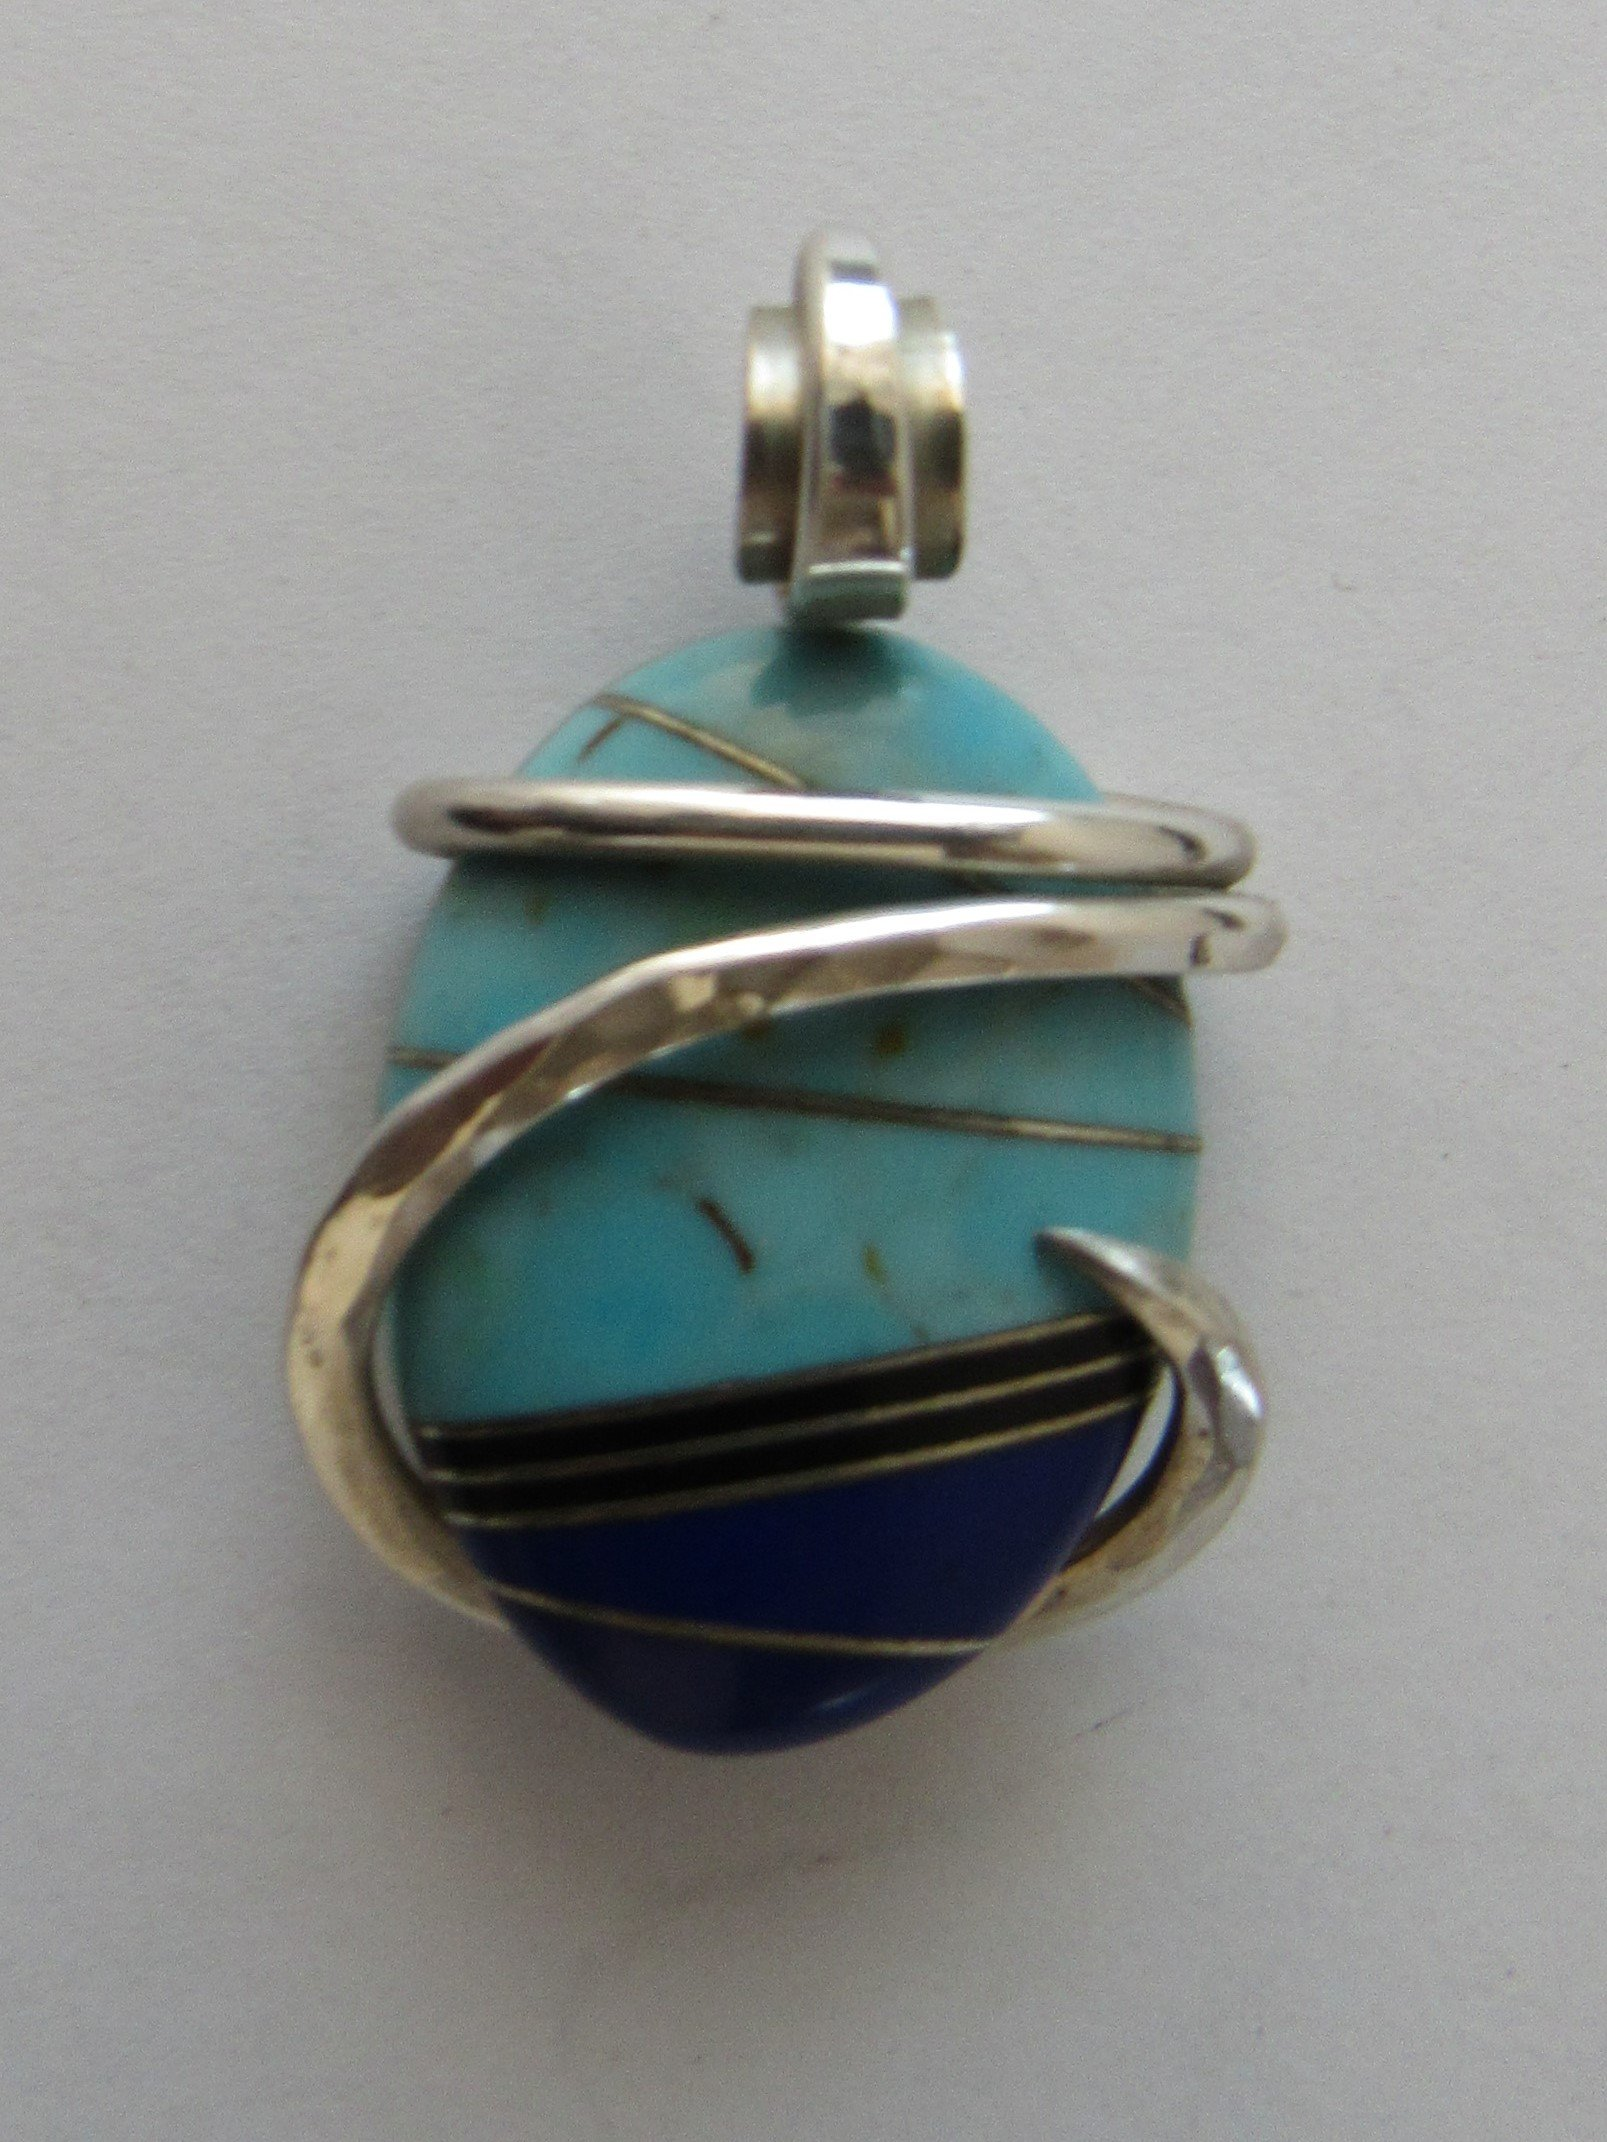 Turquoise/Lapis Lazuli Wrapped Stone Pendant by Isabella Roth